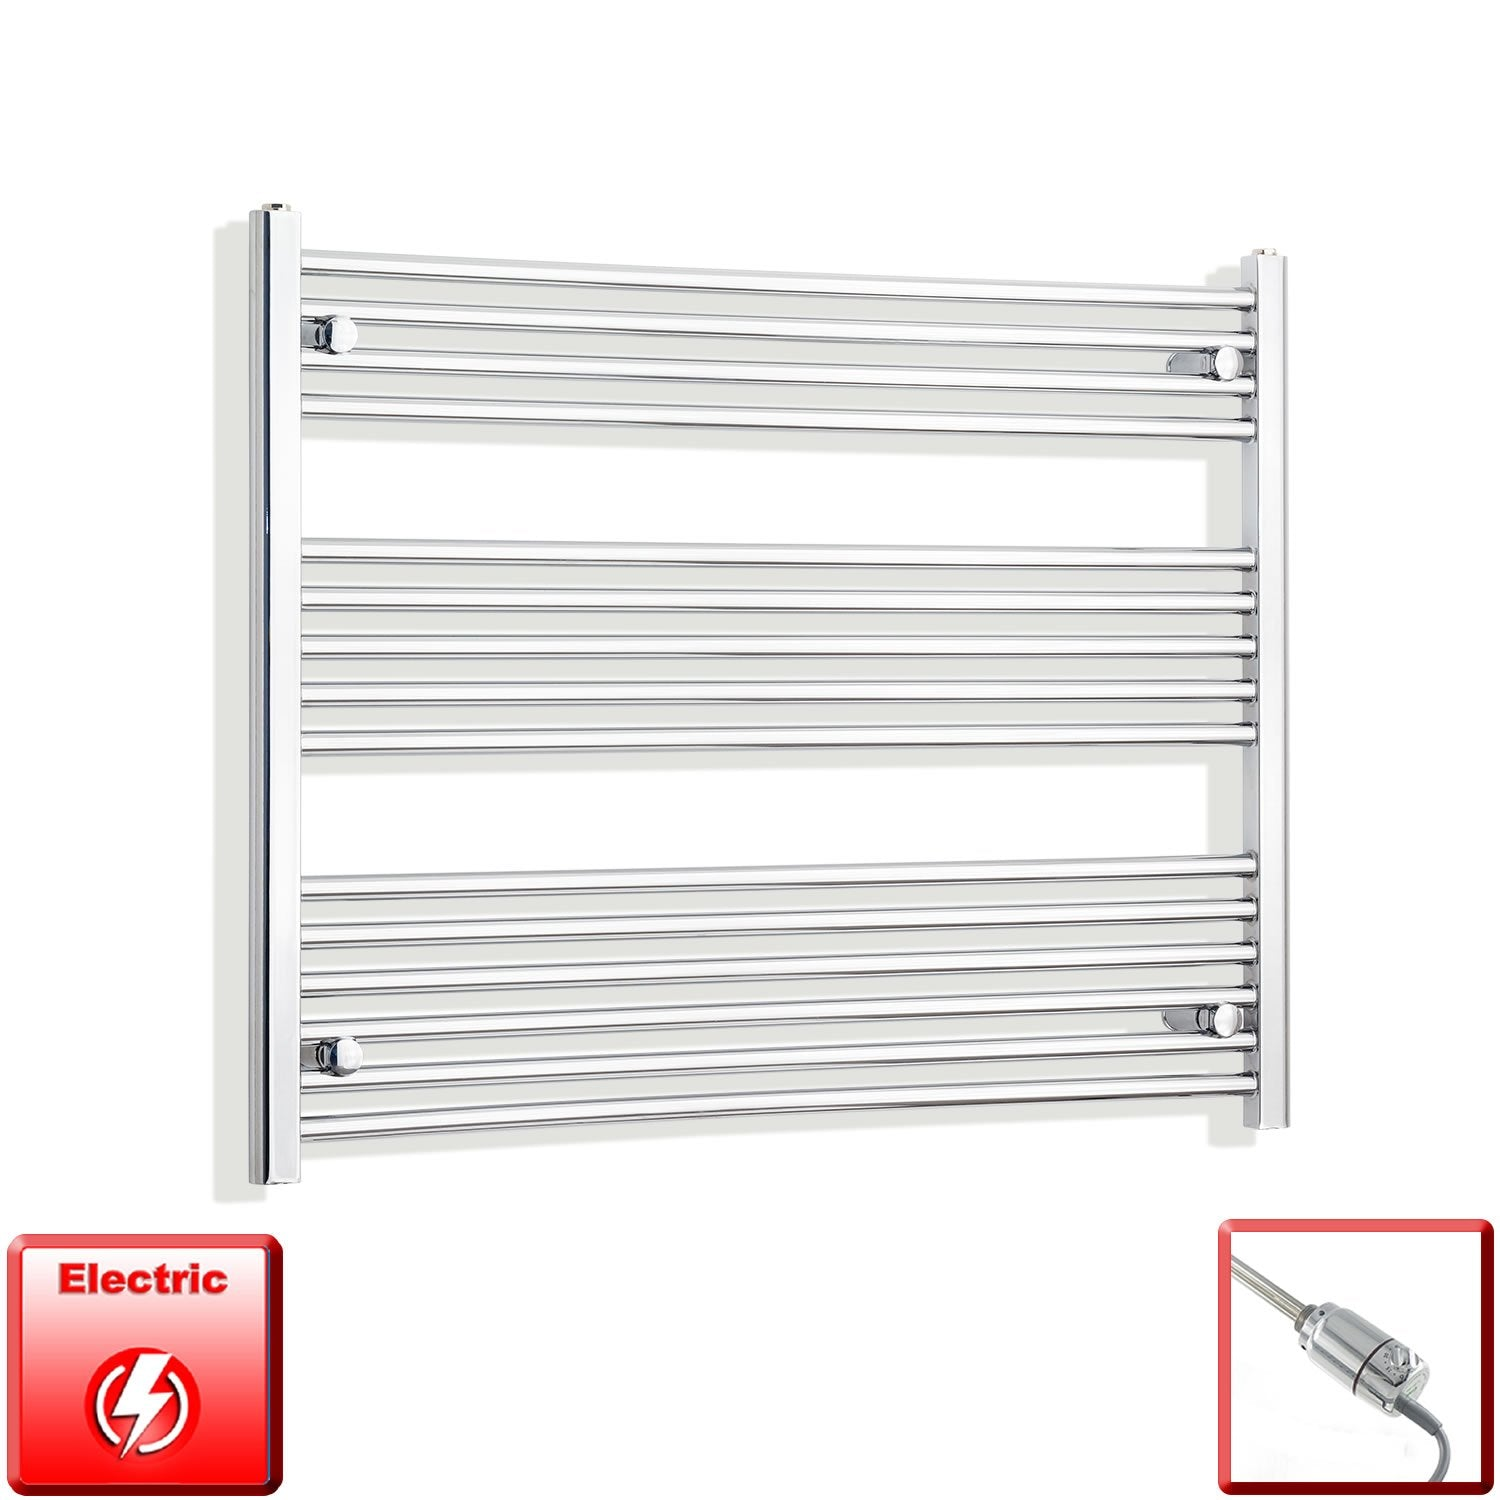 1000mm Wide 800mm High Flat Chrome Pre-Filled Electric Heated Towel Rail Radiator HTR,GT Thermostatic